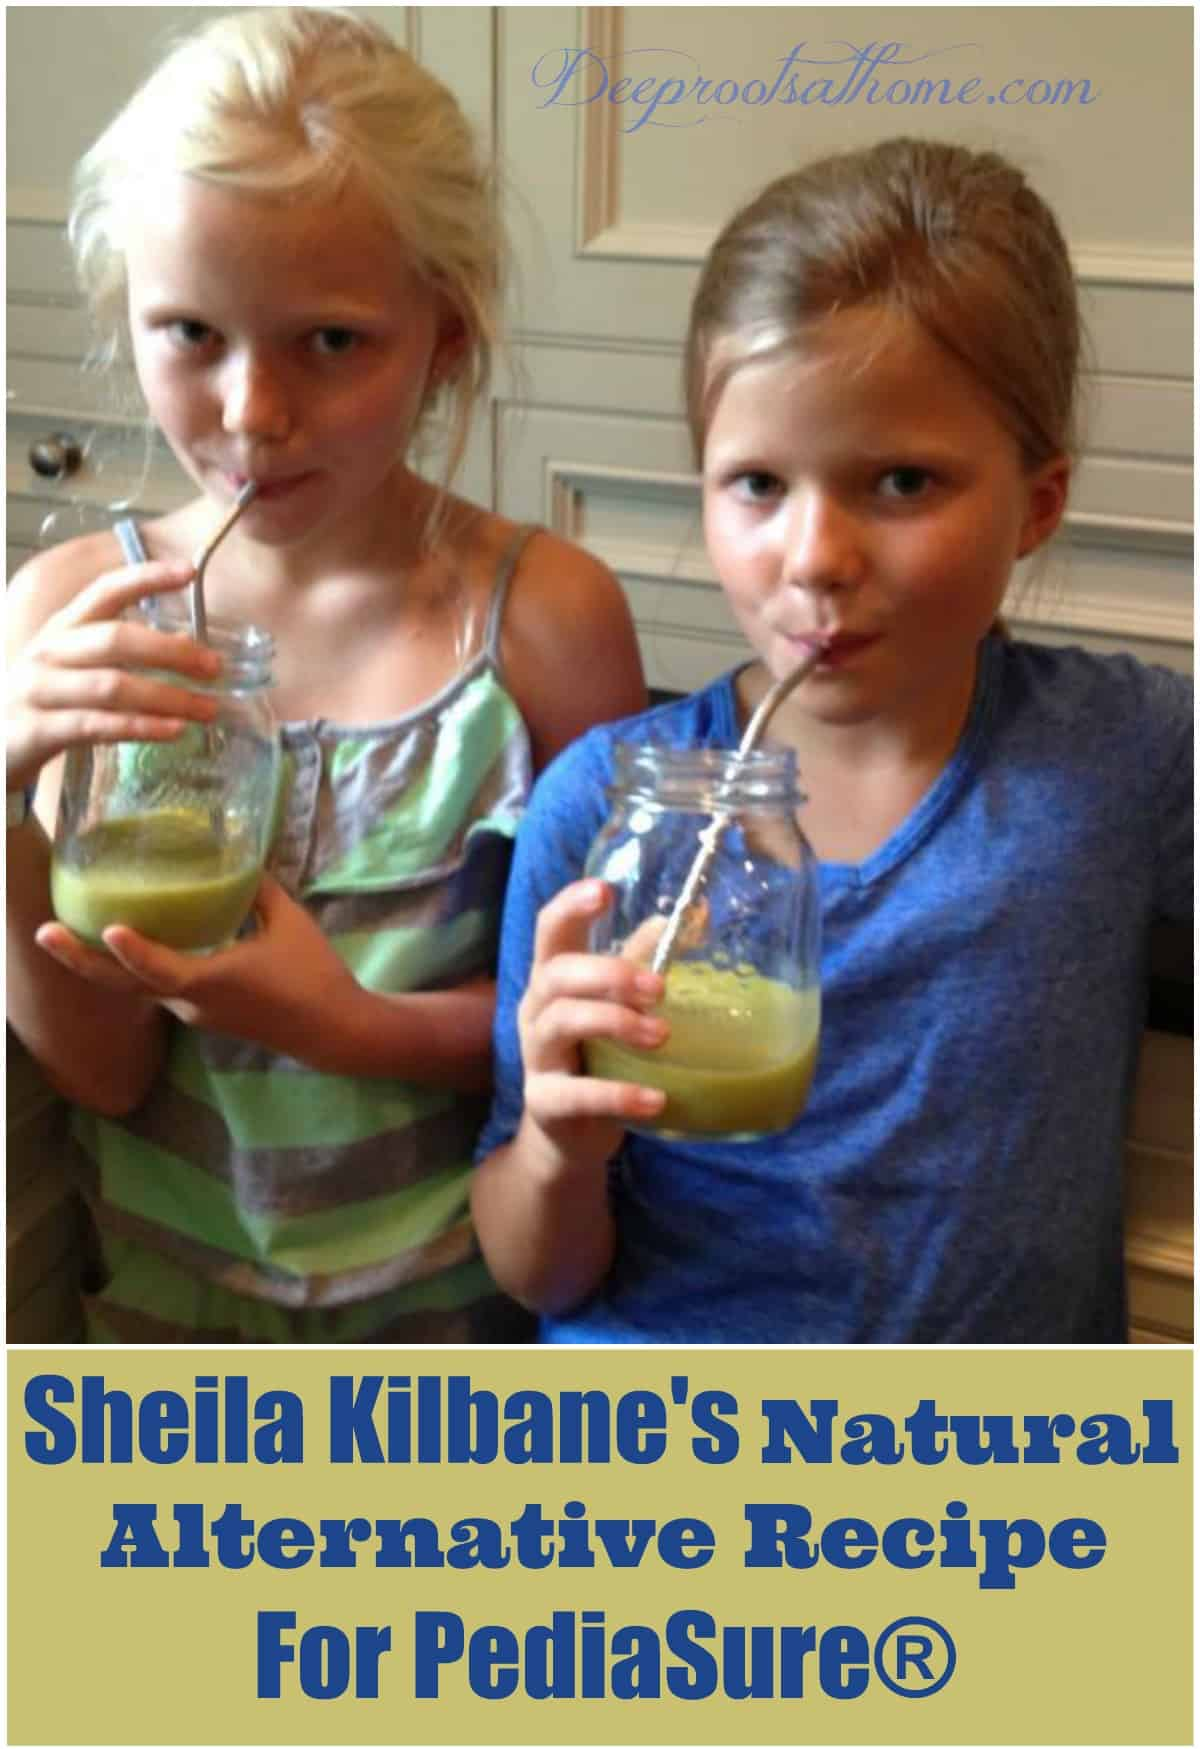 2 Cute young girls drinking Dr. Kilbane's Pediasure alternative.